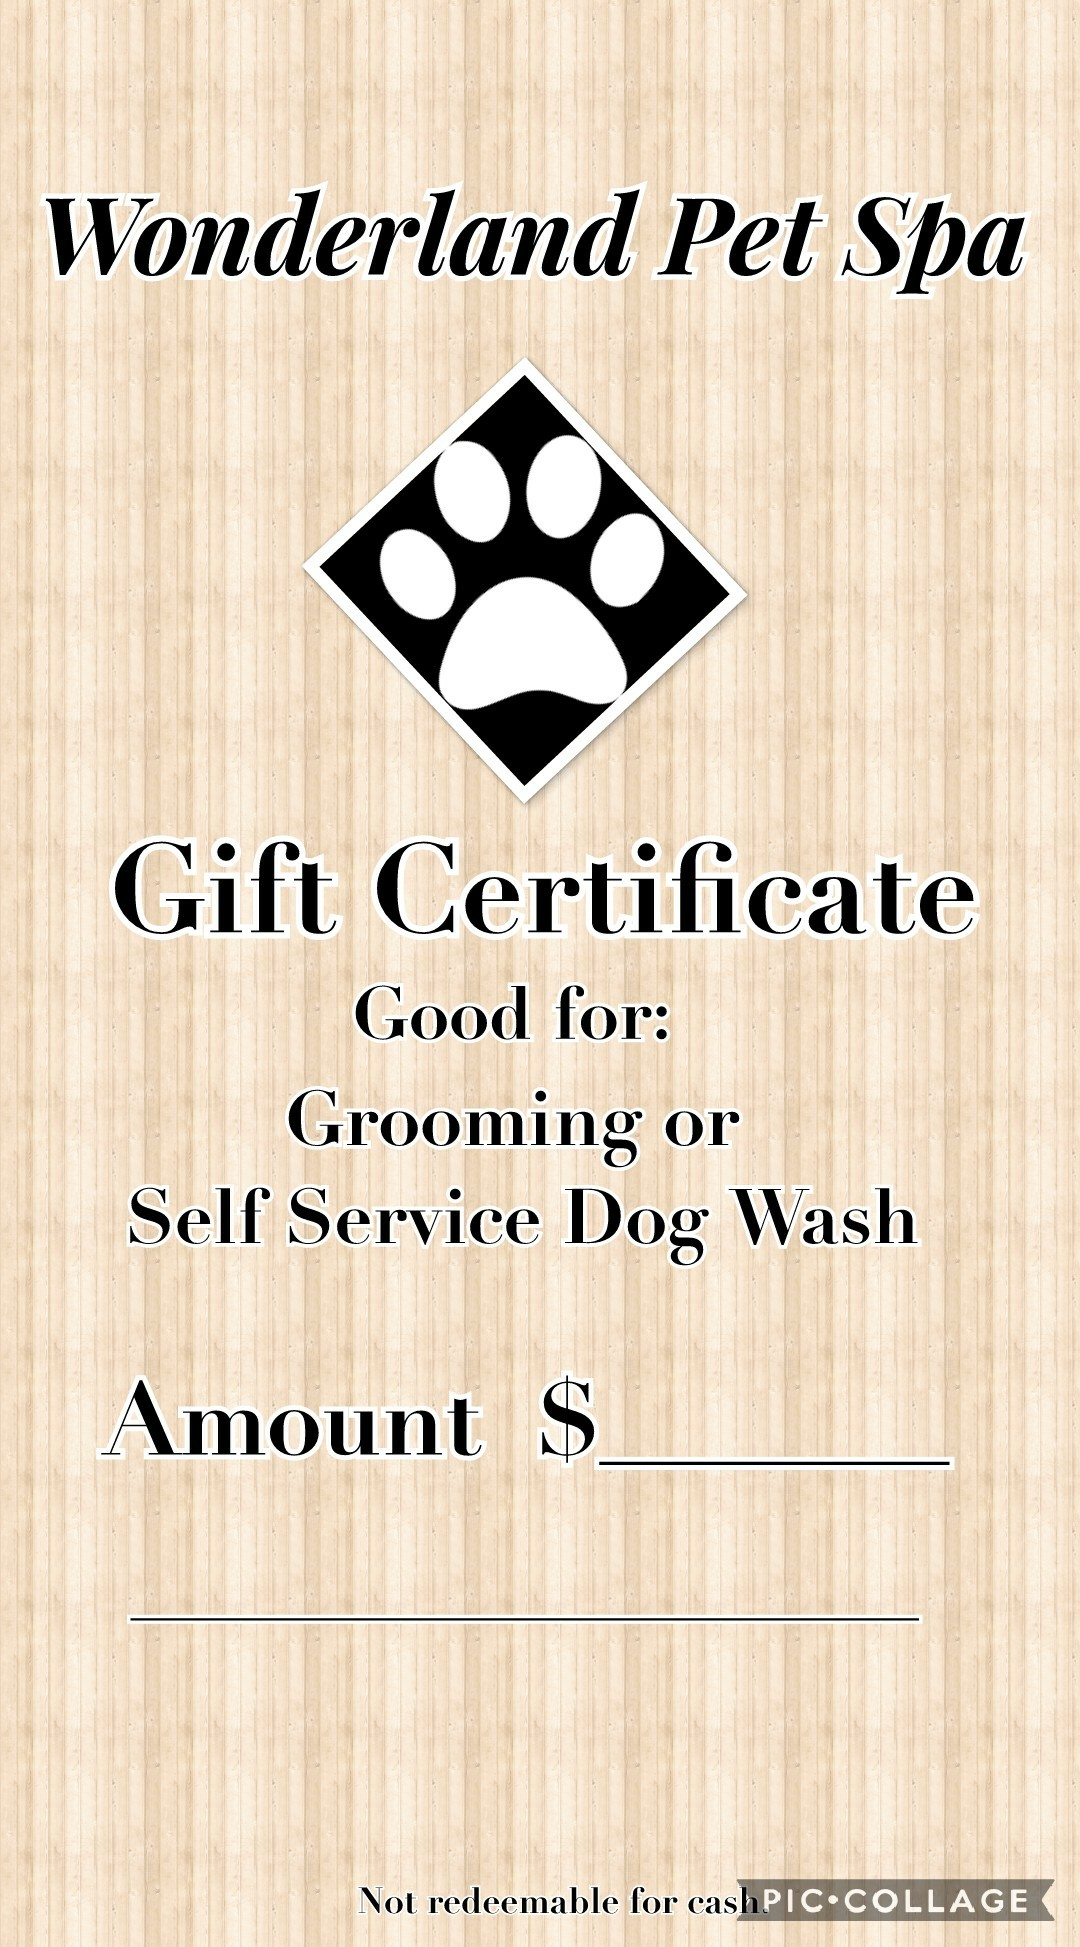 Wonderland pet spa 20601 w valley blvd suite a 104 tehachapi ca wonderland pet spa 20601 w valley blvd suite a 104 tehachapi ca 93561 yp solutioingenieria Images